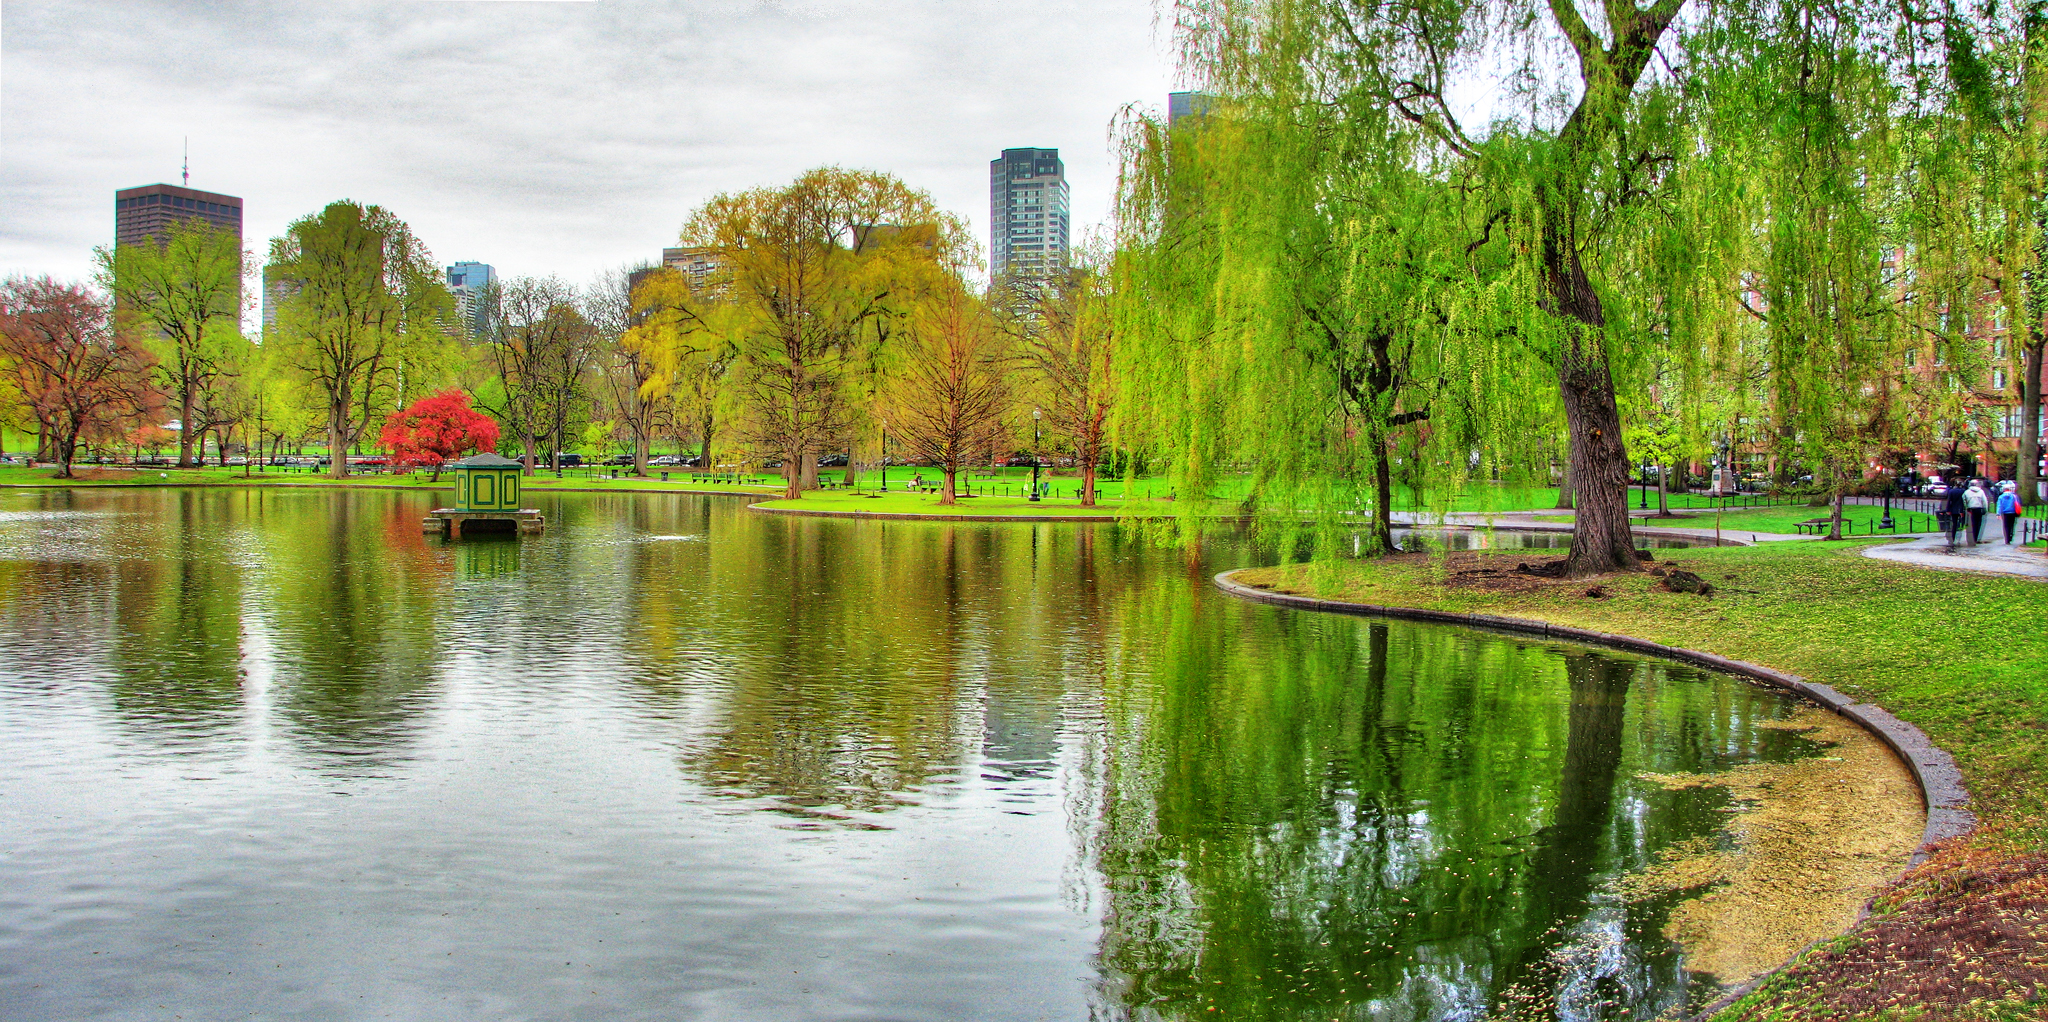 Panorama of the Boston Public Garden (image from Wikimedia)